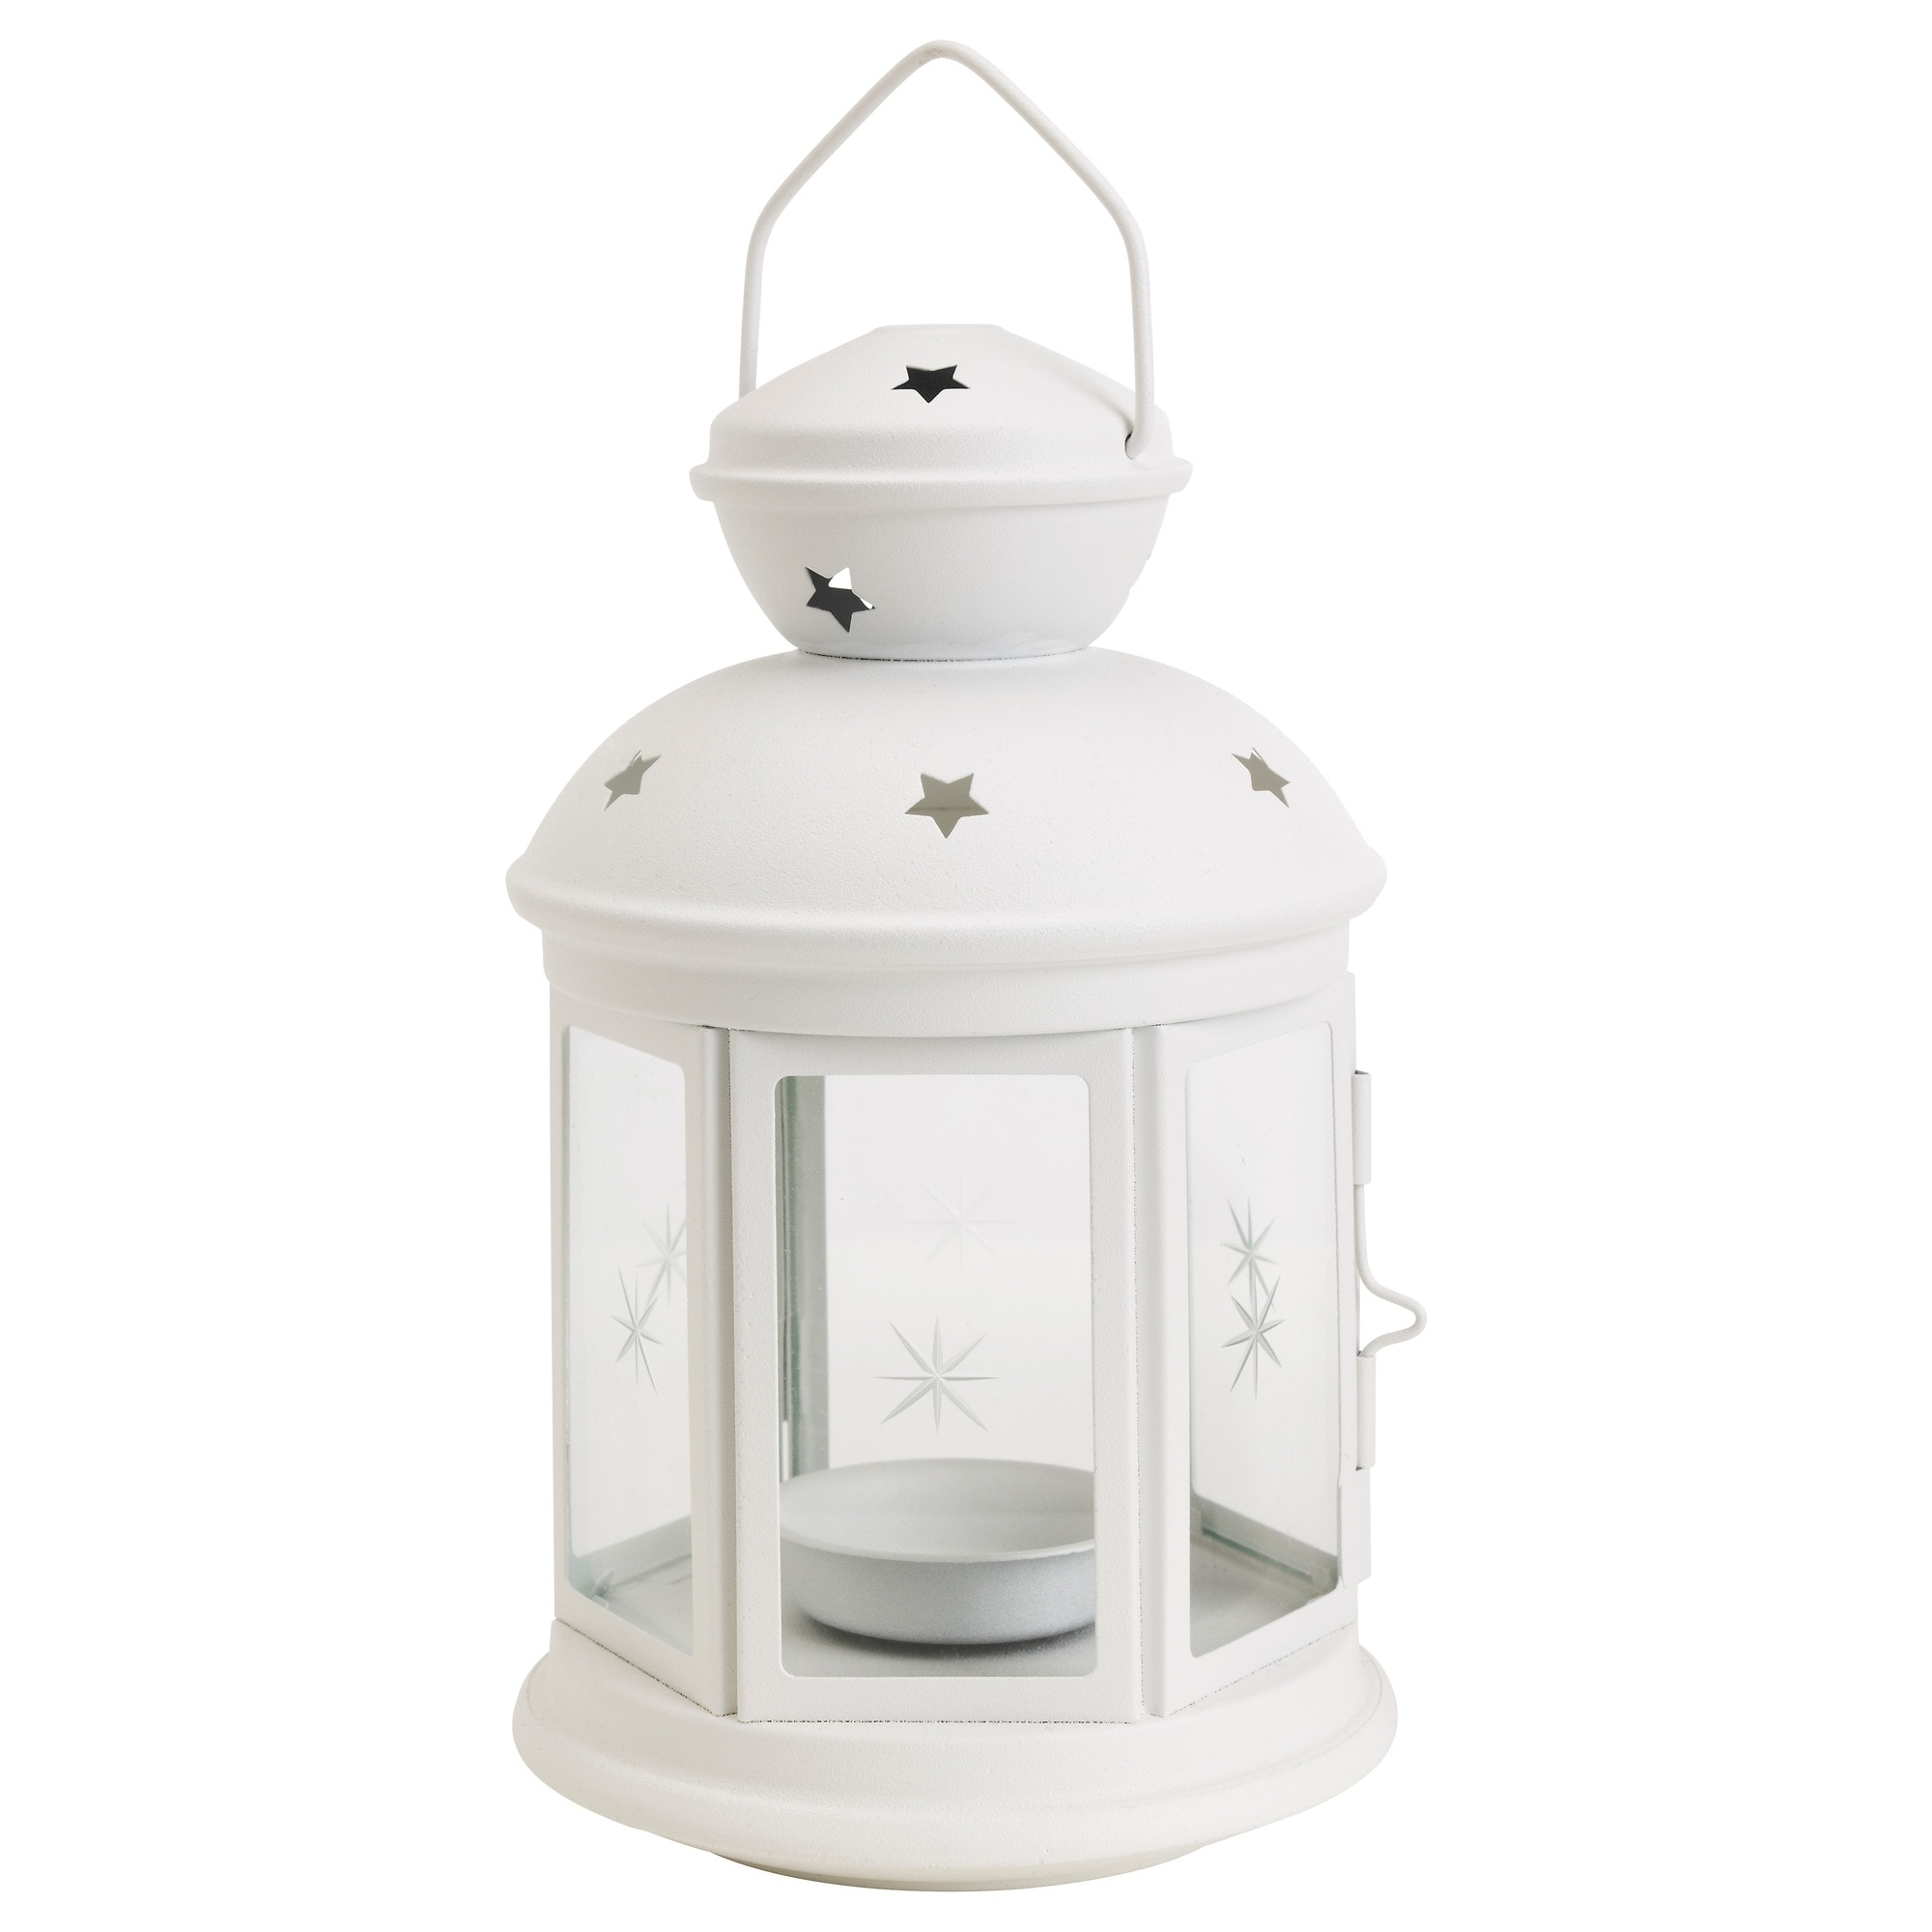 Rotera Lantern For Tealight – Ikea Intended For Most Up To Date Ikea Outdoor Lanterns (View 3 of 20)